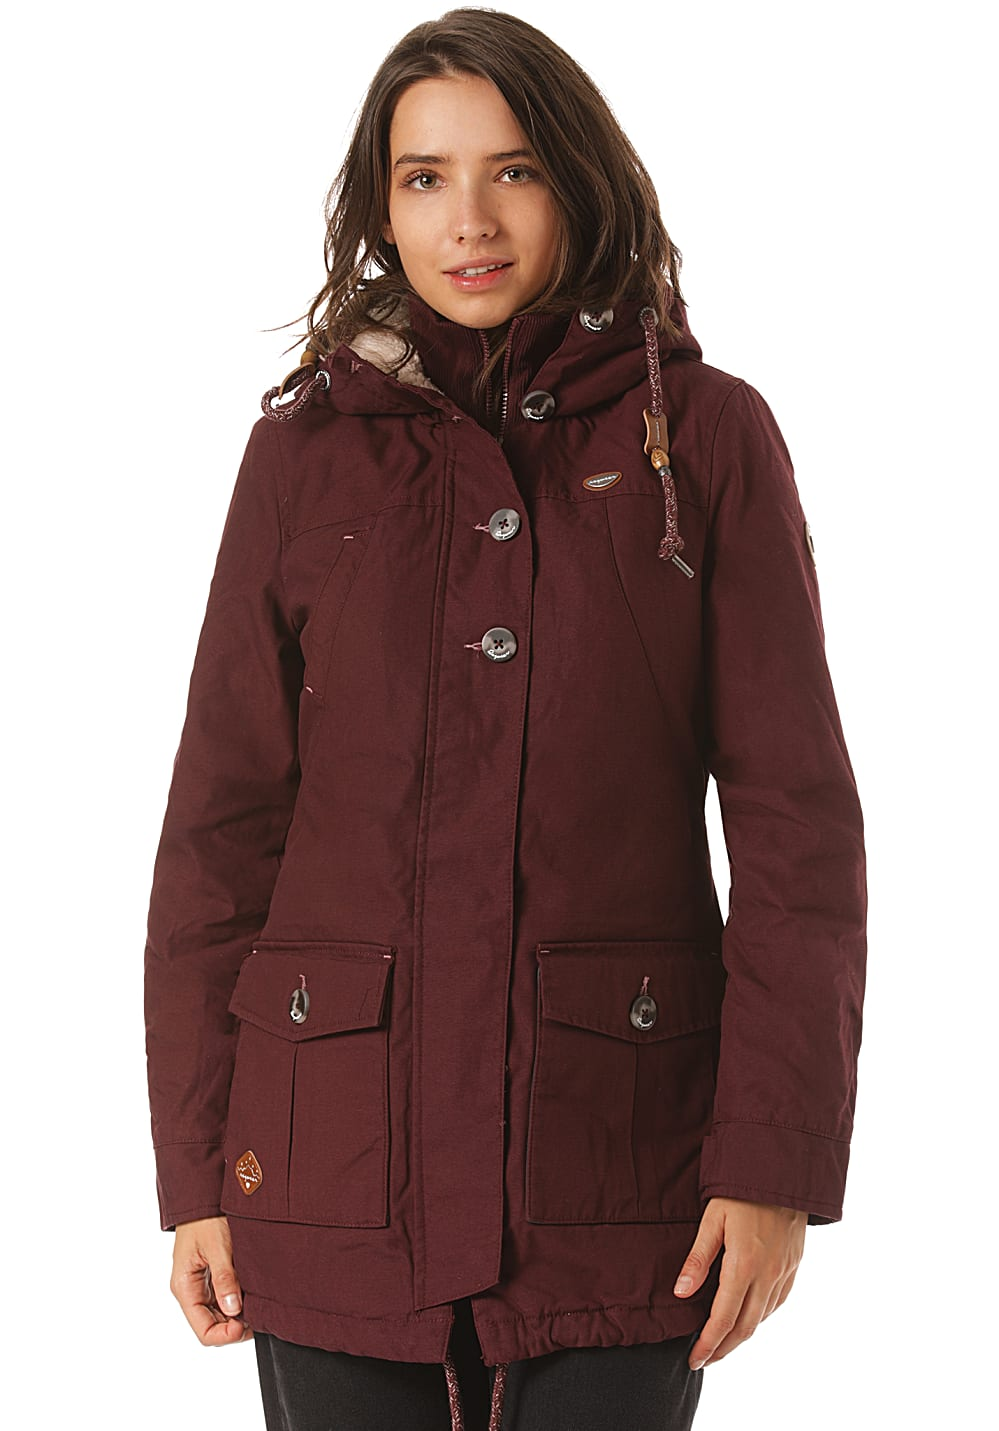 Jacken - ragwear Jane Jacke für Damen Rot  - Onlineshop Planet Sports